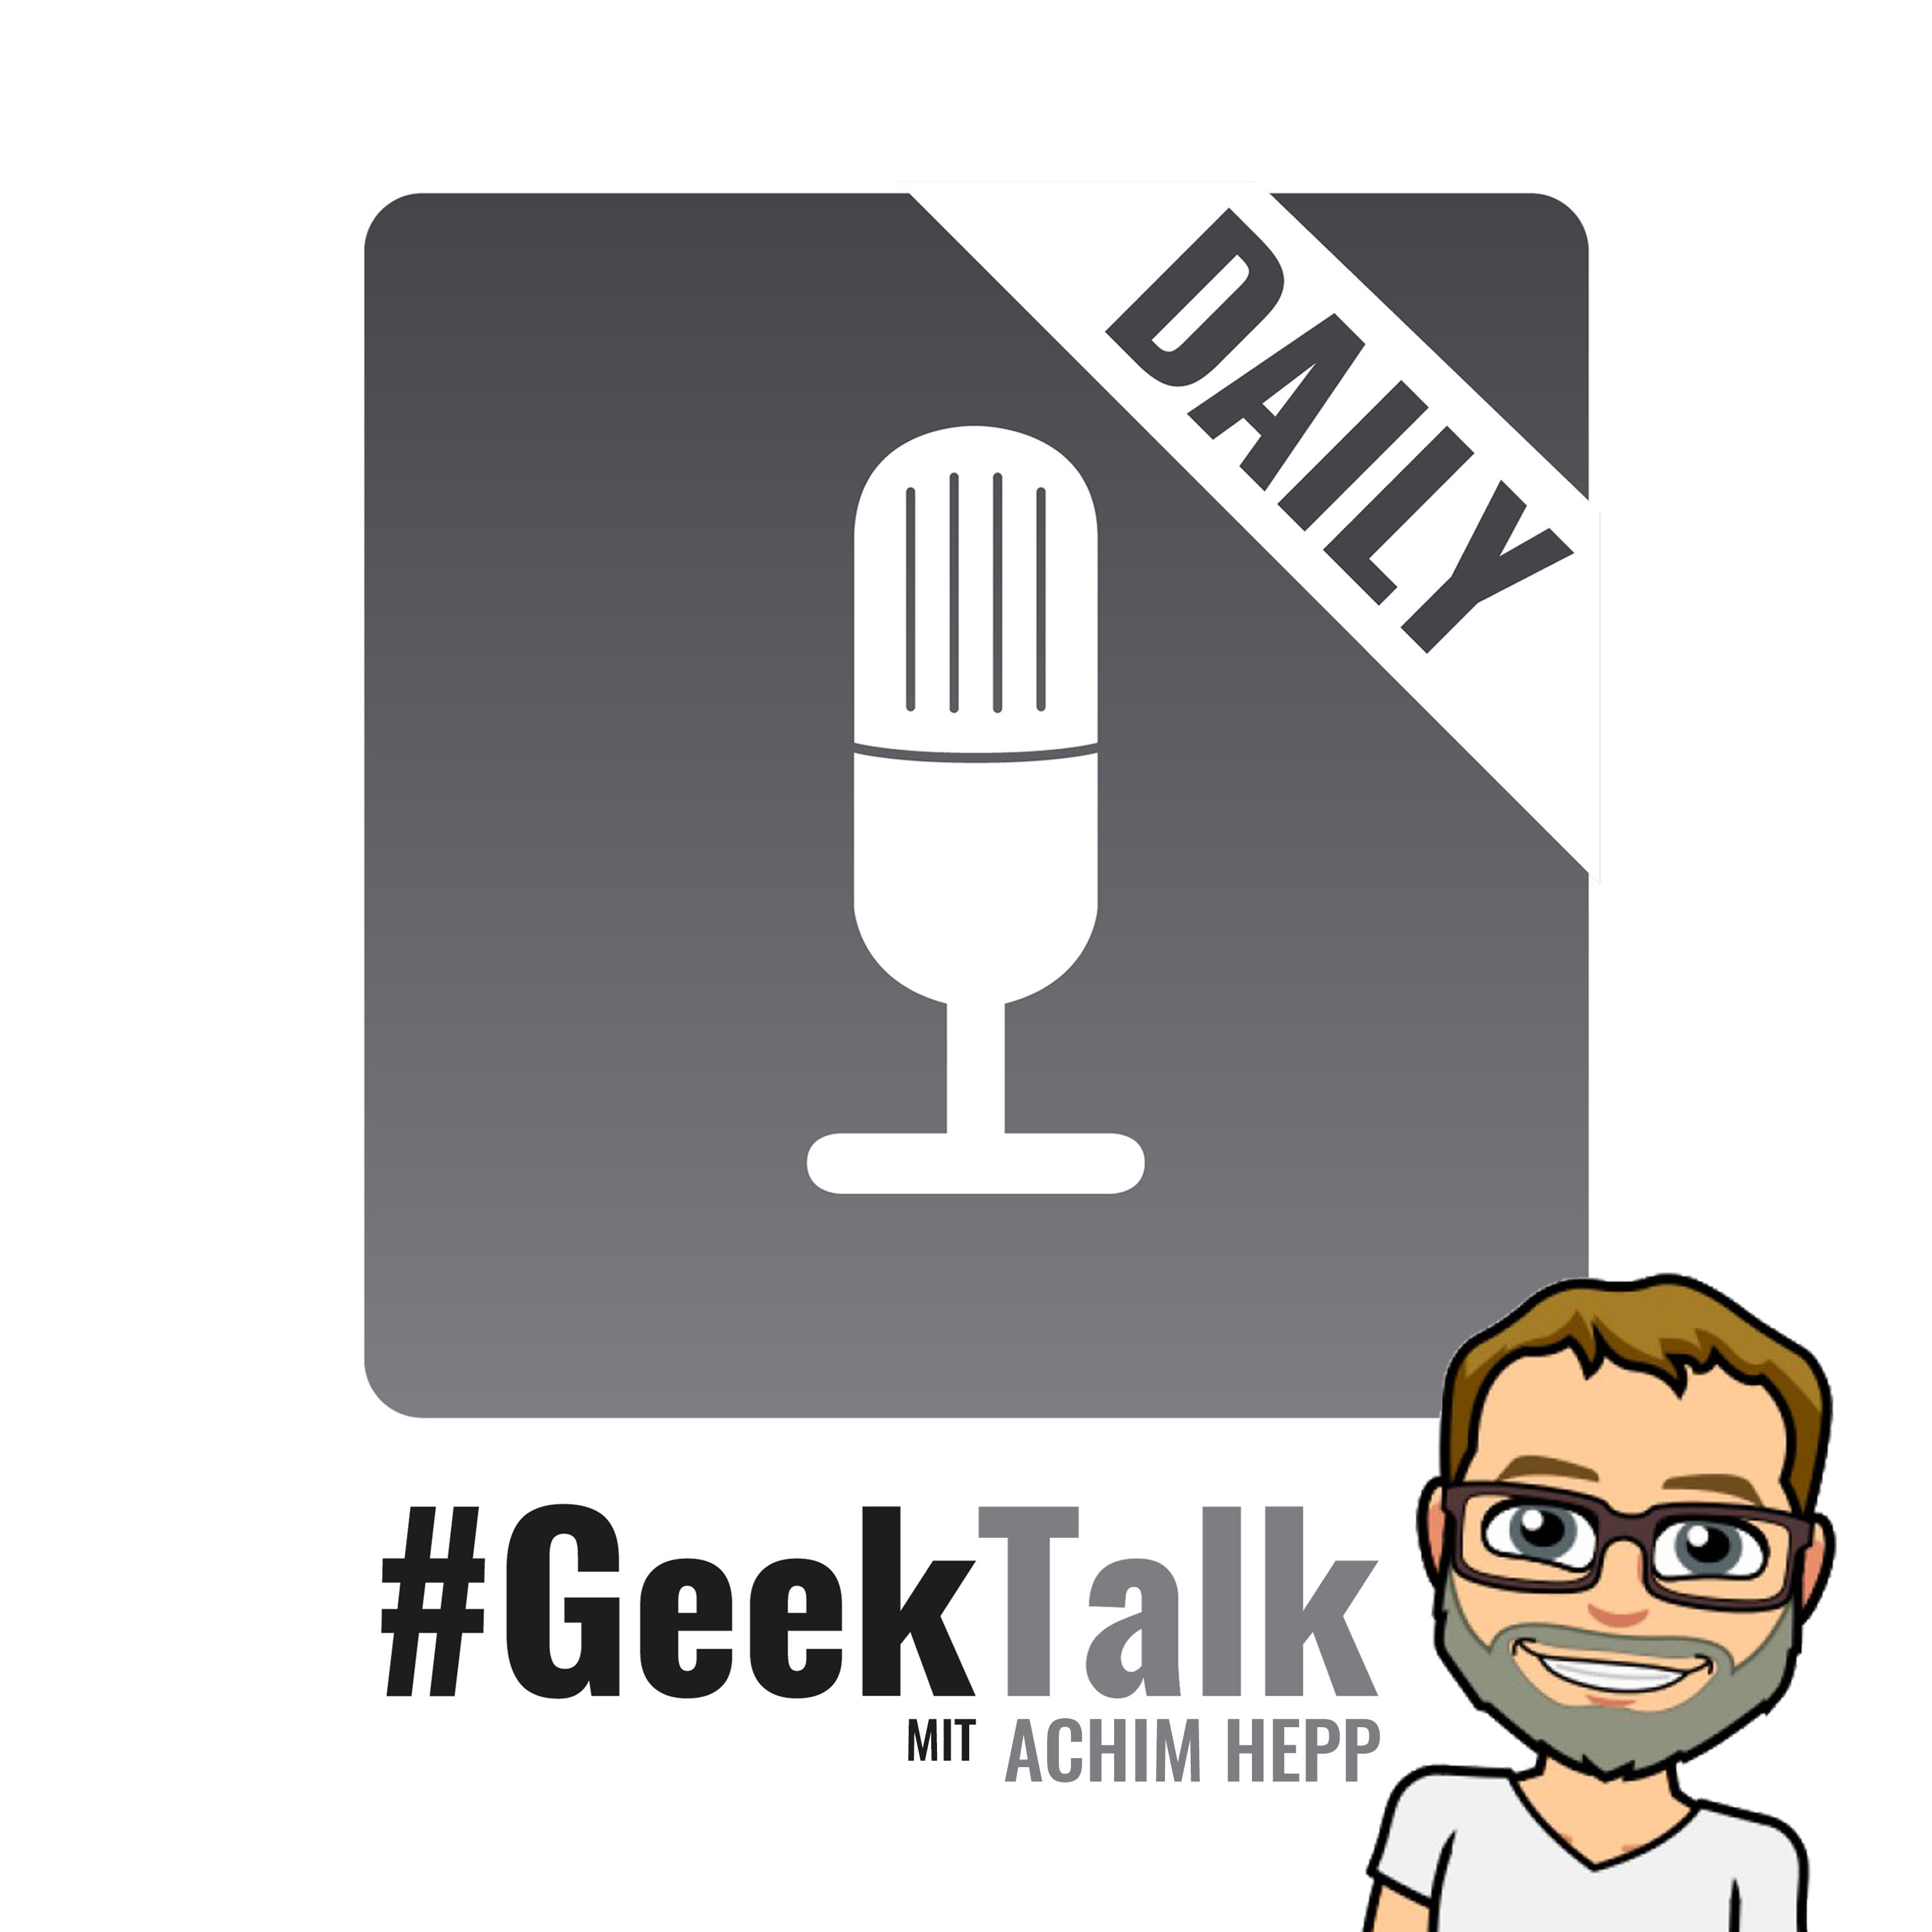 0926 #GeekTalk Daily mit Achim Hepp zu Apple AirPods Max und YouTube HDR